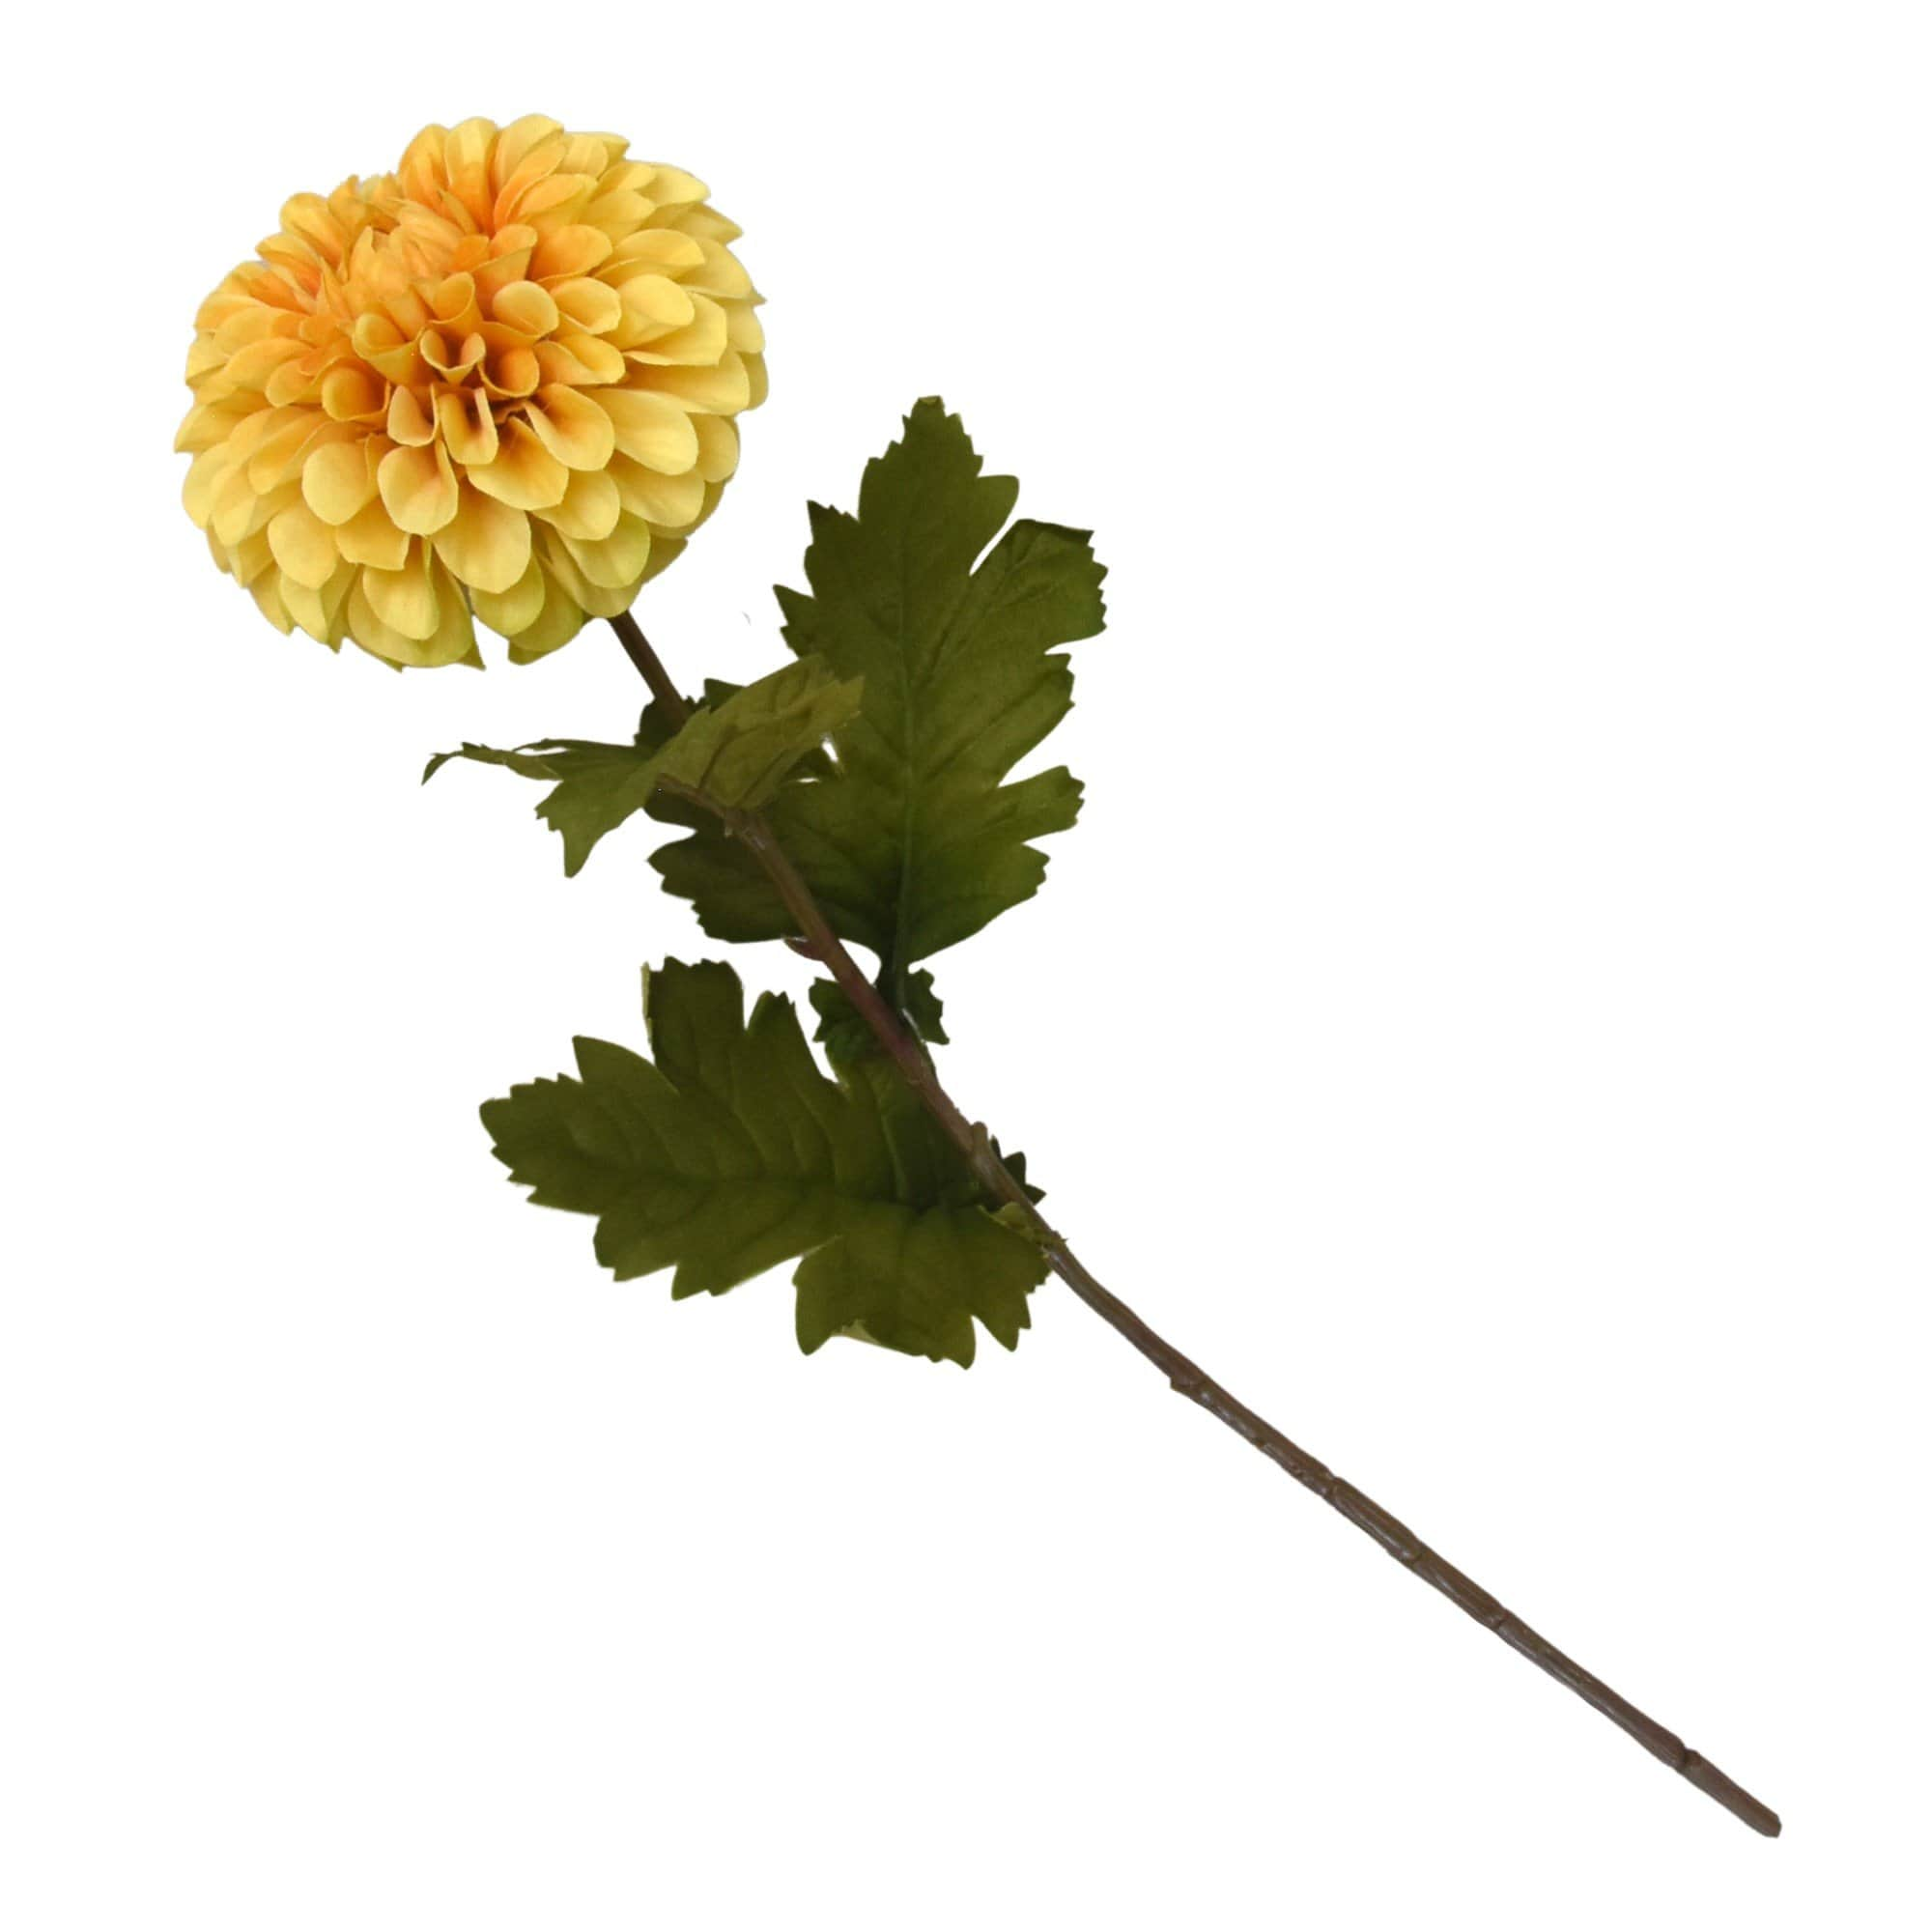 Candlelight Home Artificial Plants & Flowers Single Stem Faux Dahlia Ochre 60cm Tall